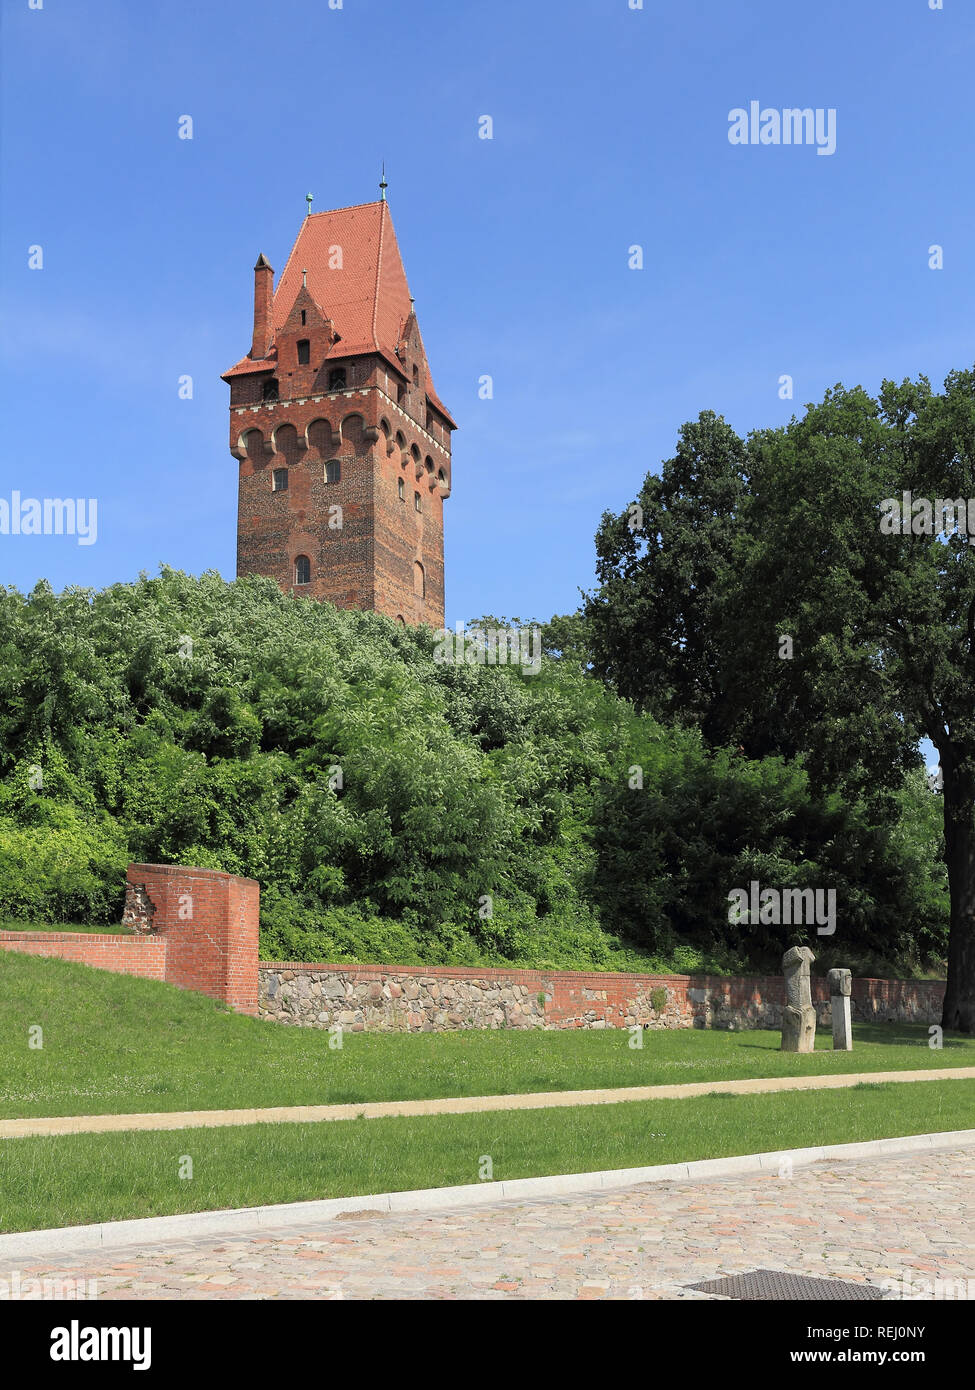 Castle and the Lookout tower in Tangermünde, Germany Stock Photo